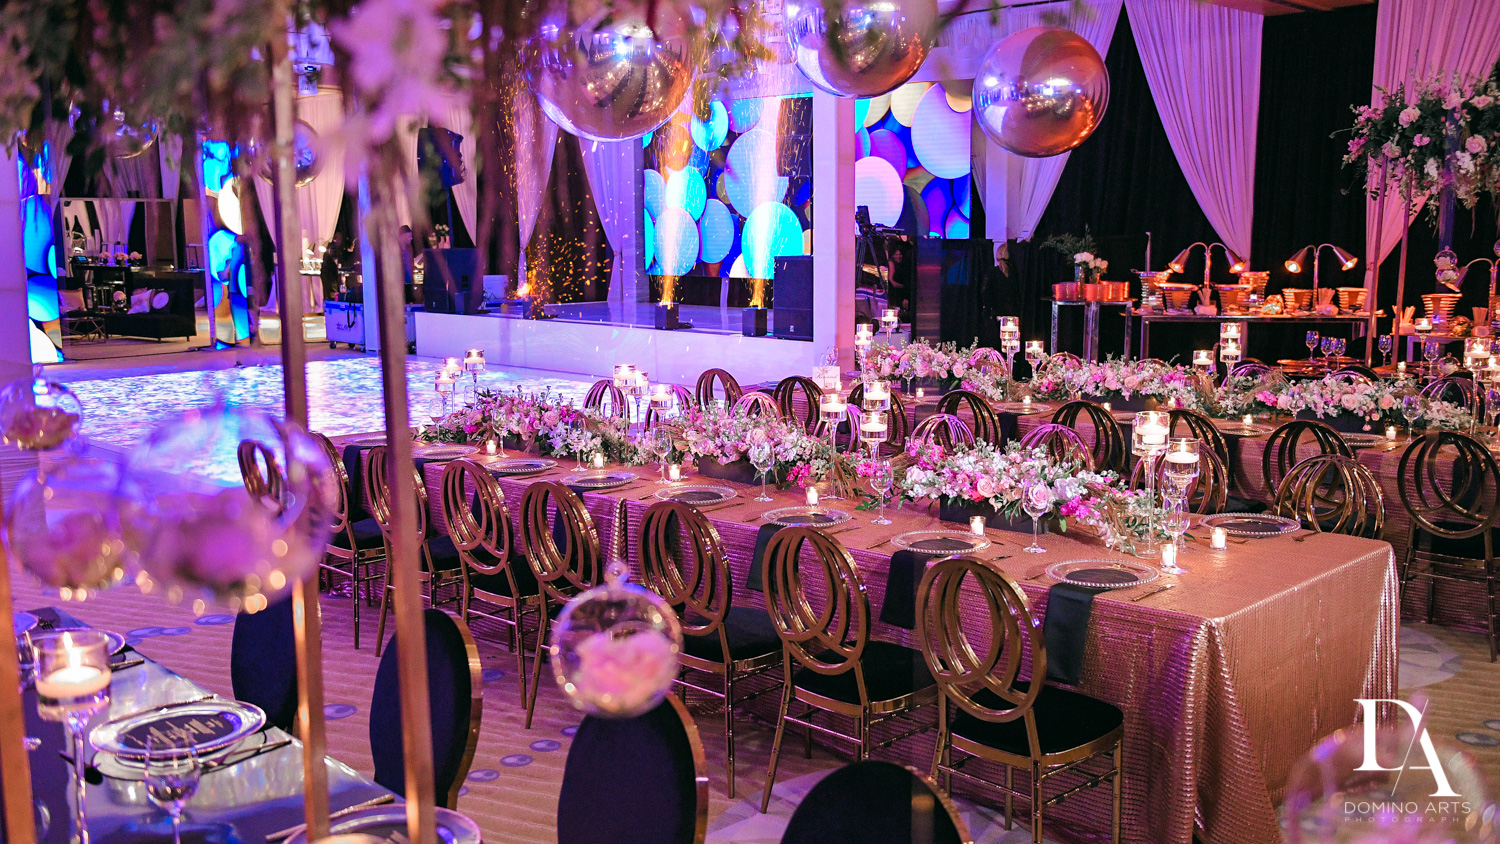 rose gold at Masquerade Ball Bat Mitzvah at Ritz Carlton Fort Lauderdale by Domino Arts Photography